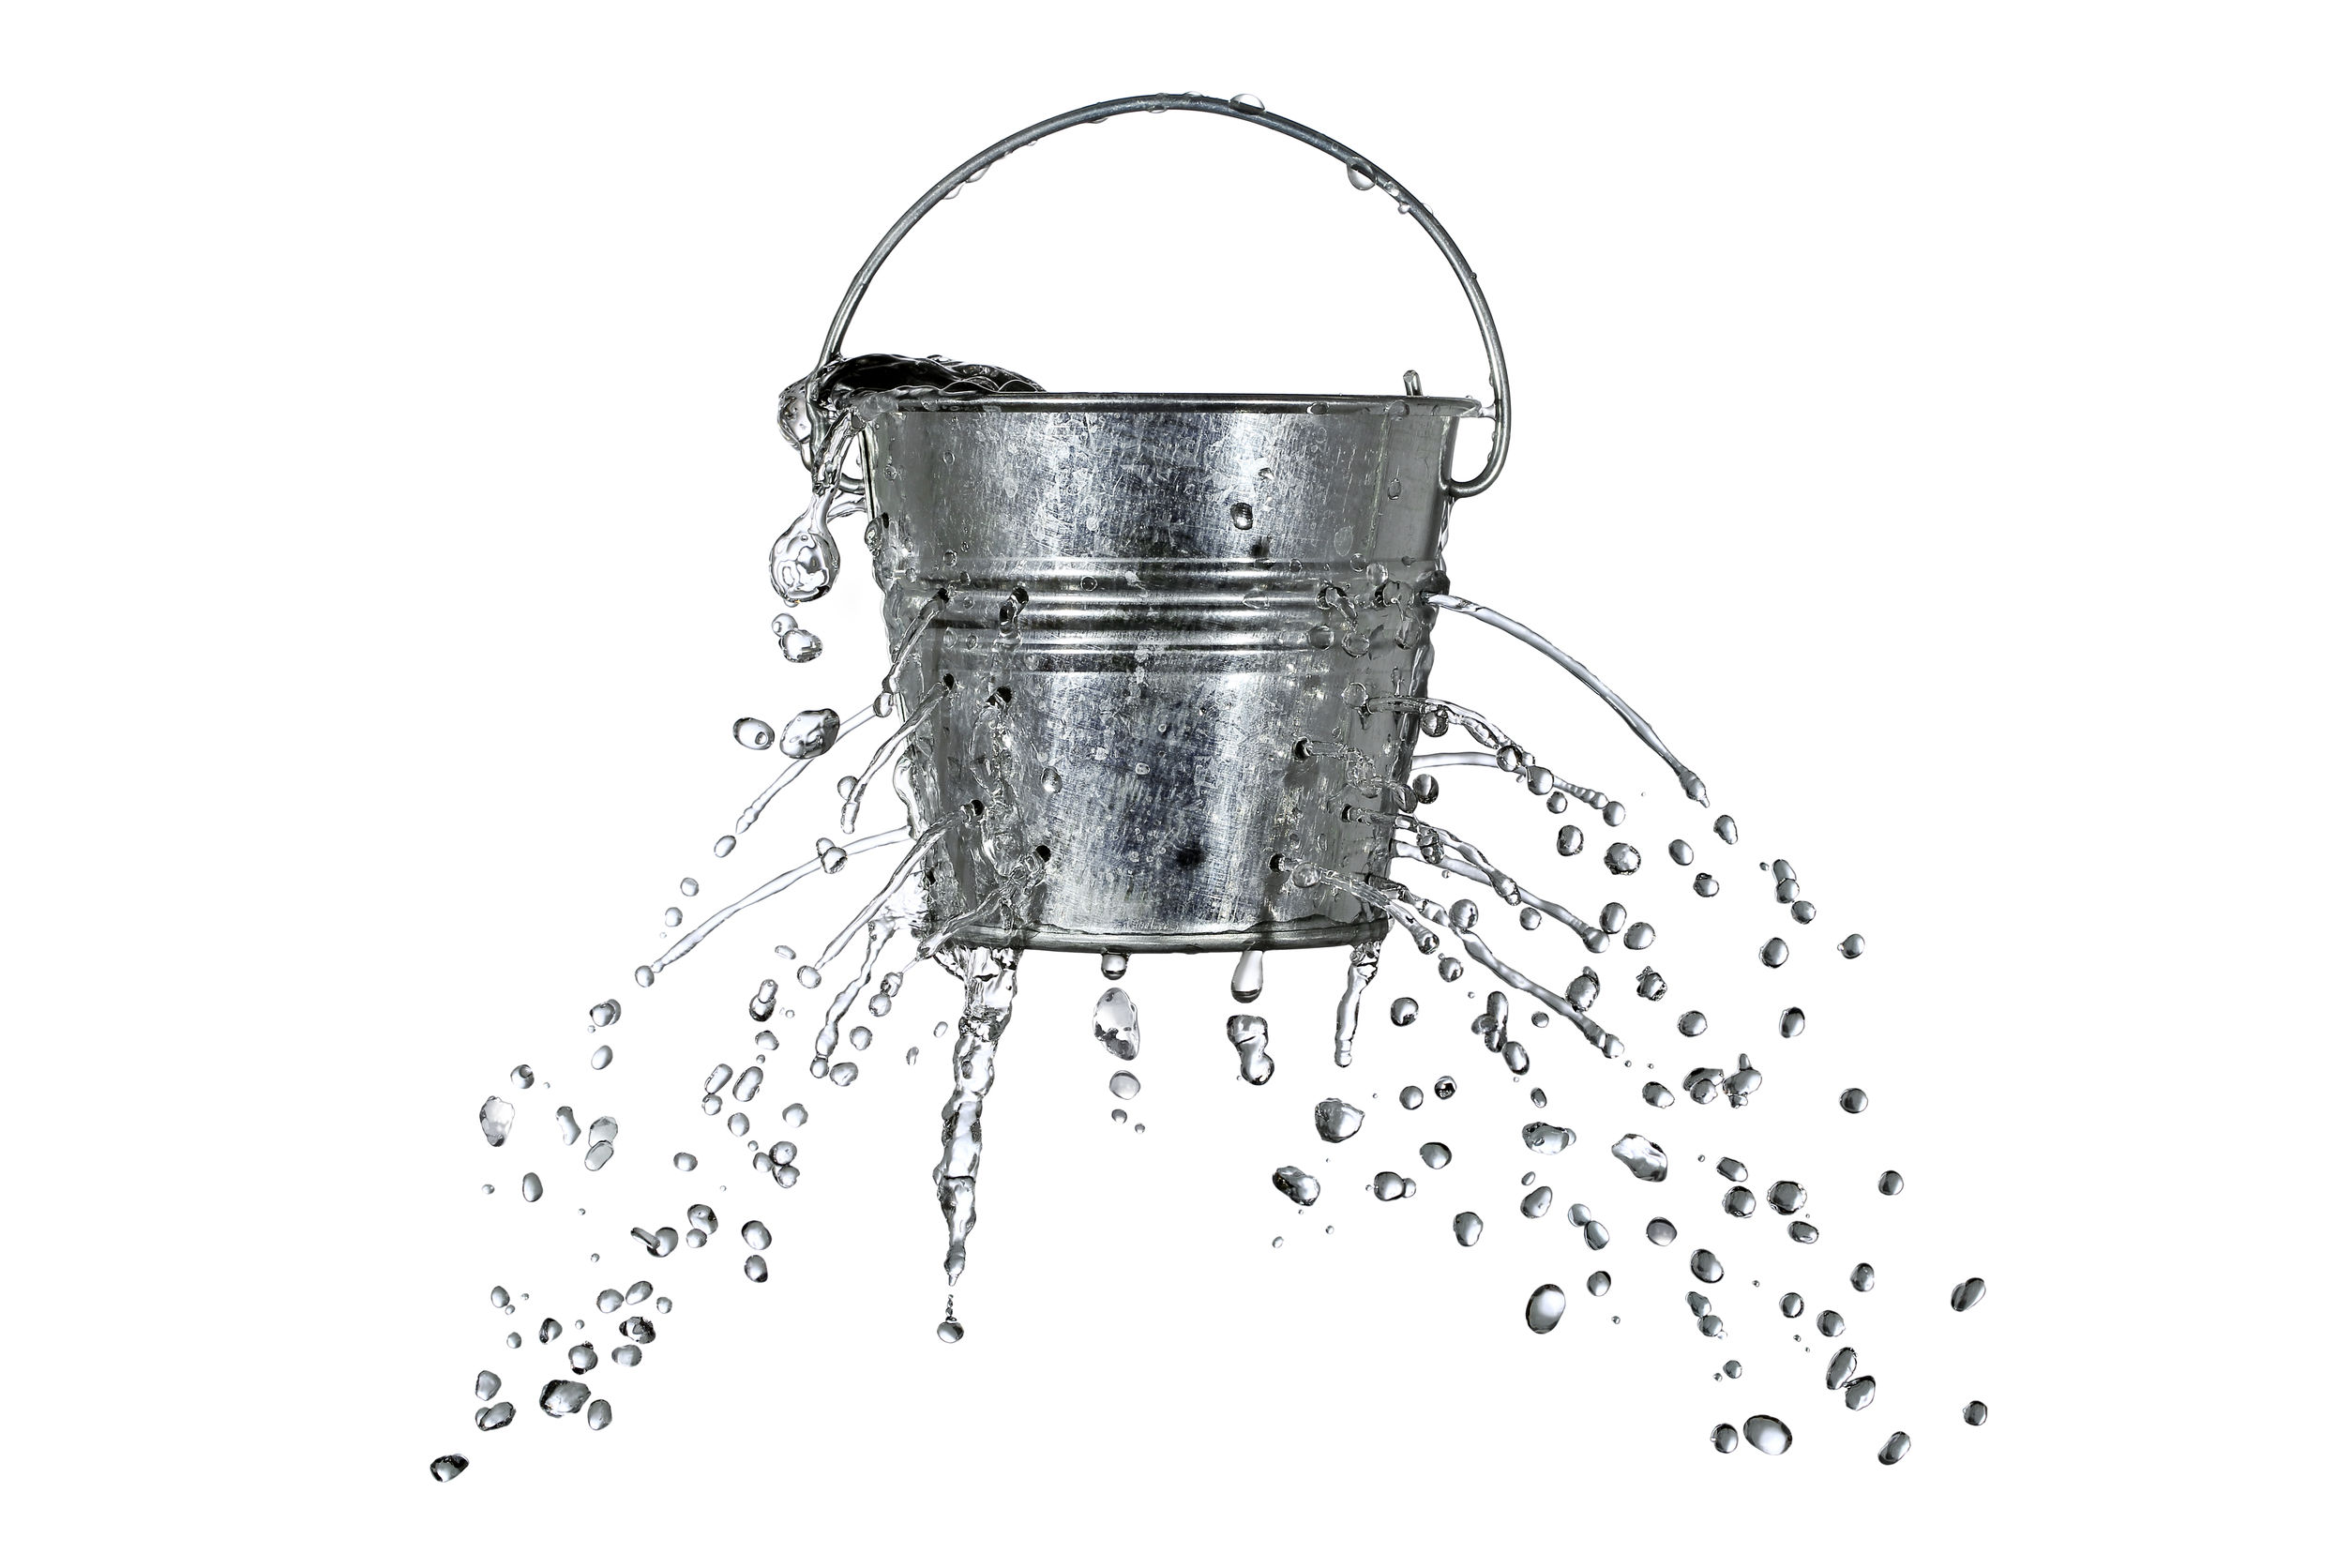 23860032 - water is coming out of a bucket with holes